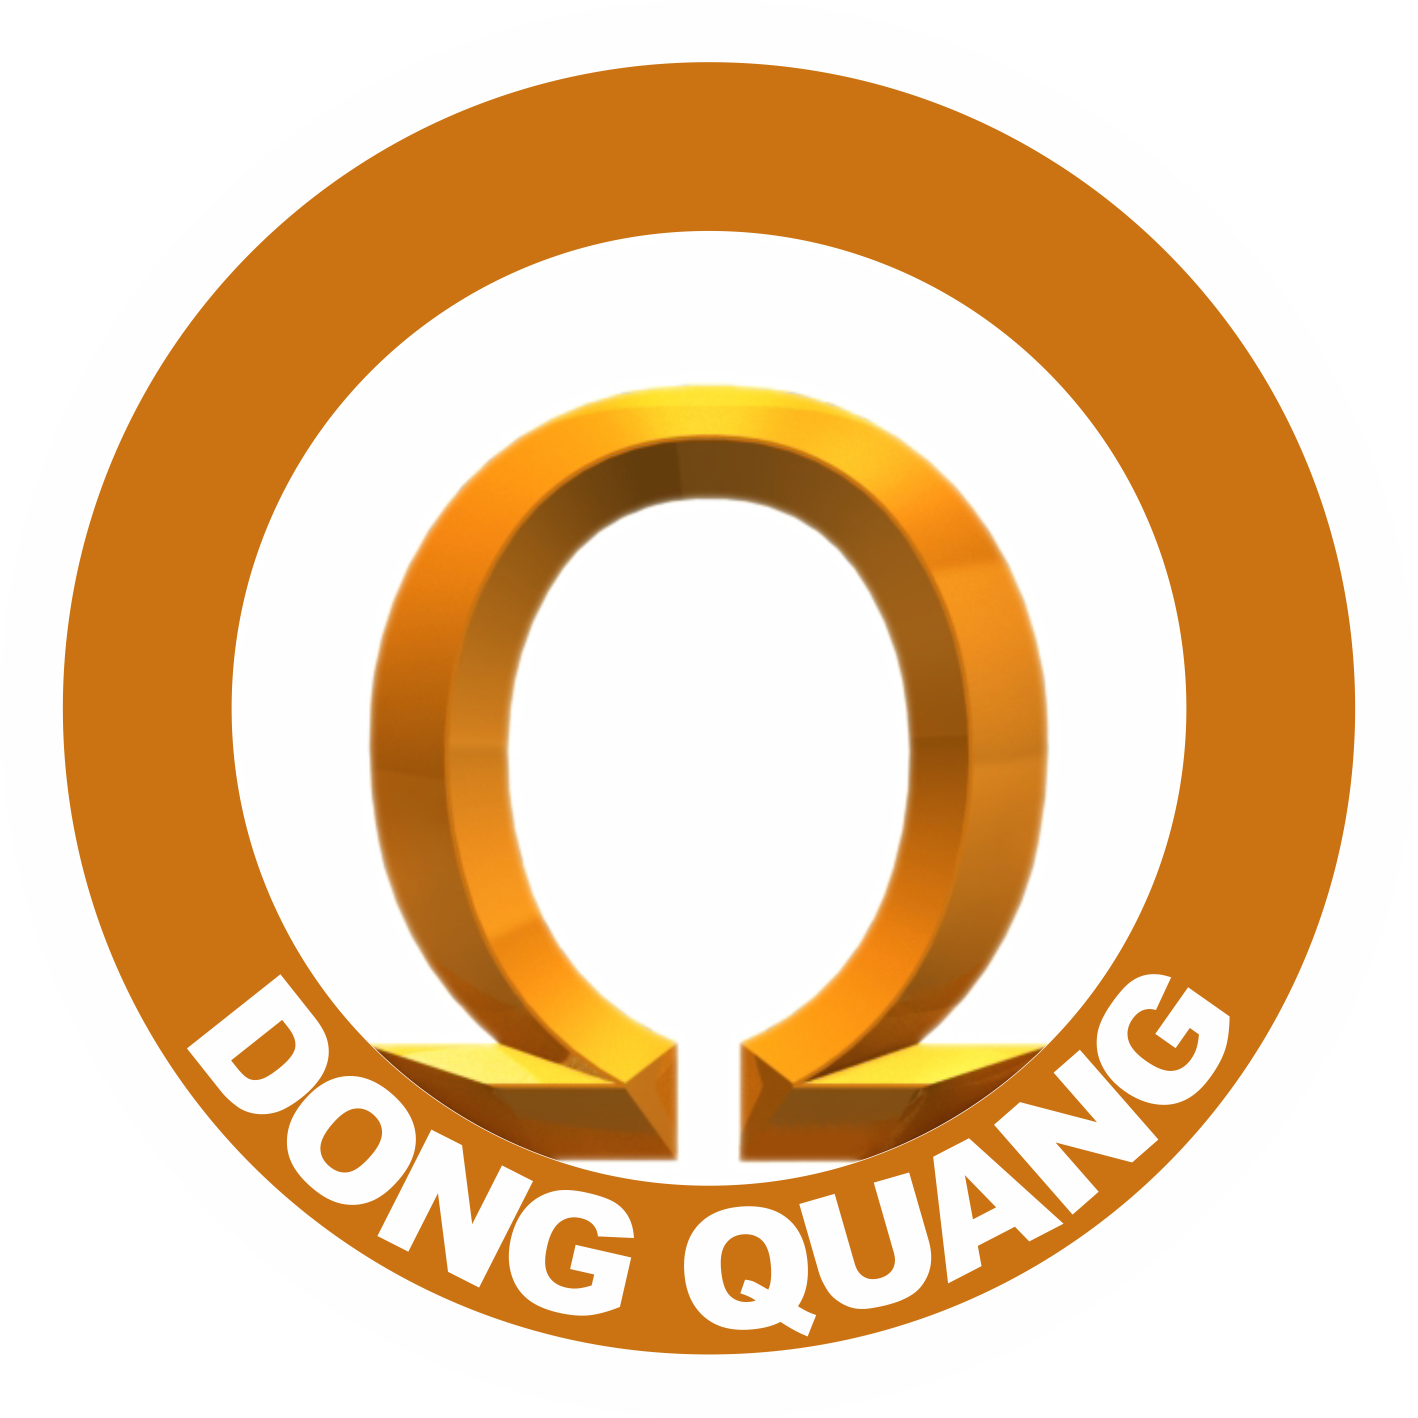 cong-ty-tnhh-co-dien-dong-quang